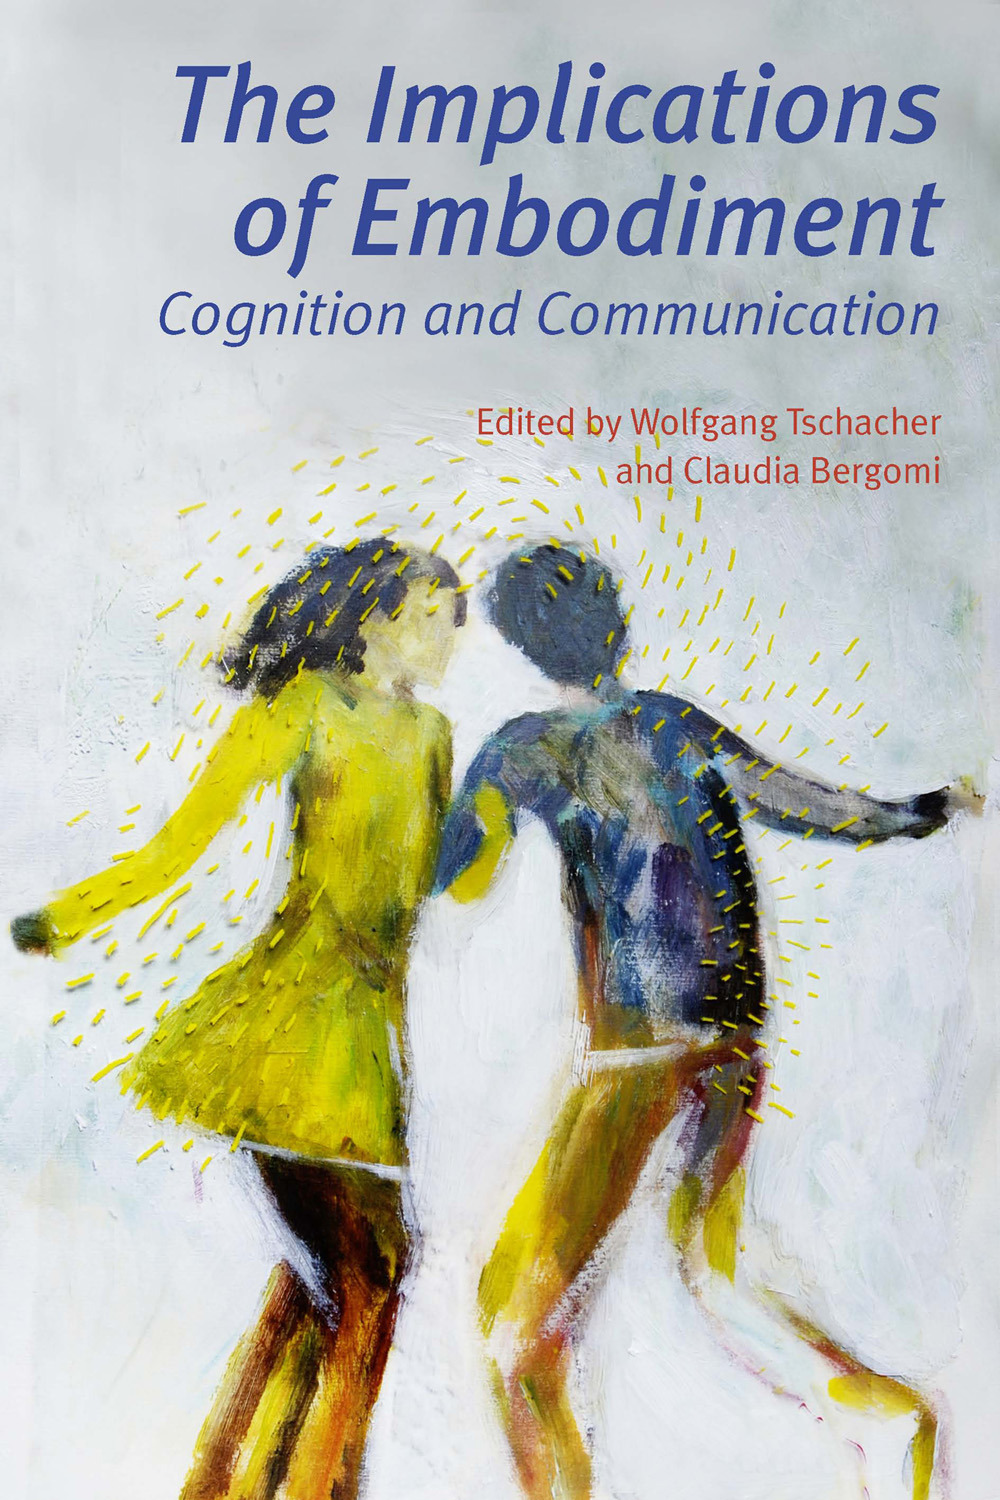 Tschacher, Wolfgang - The Implications of Embodiment, ebook